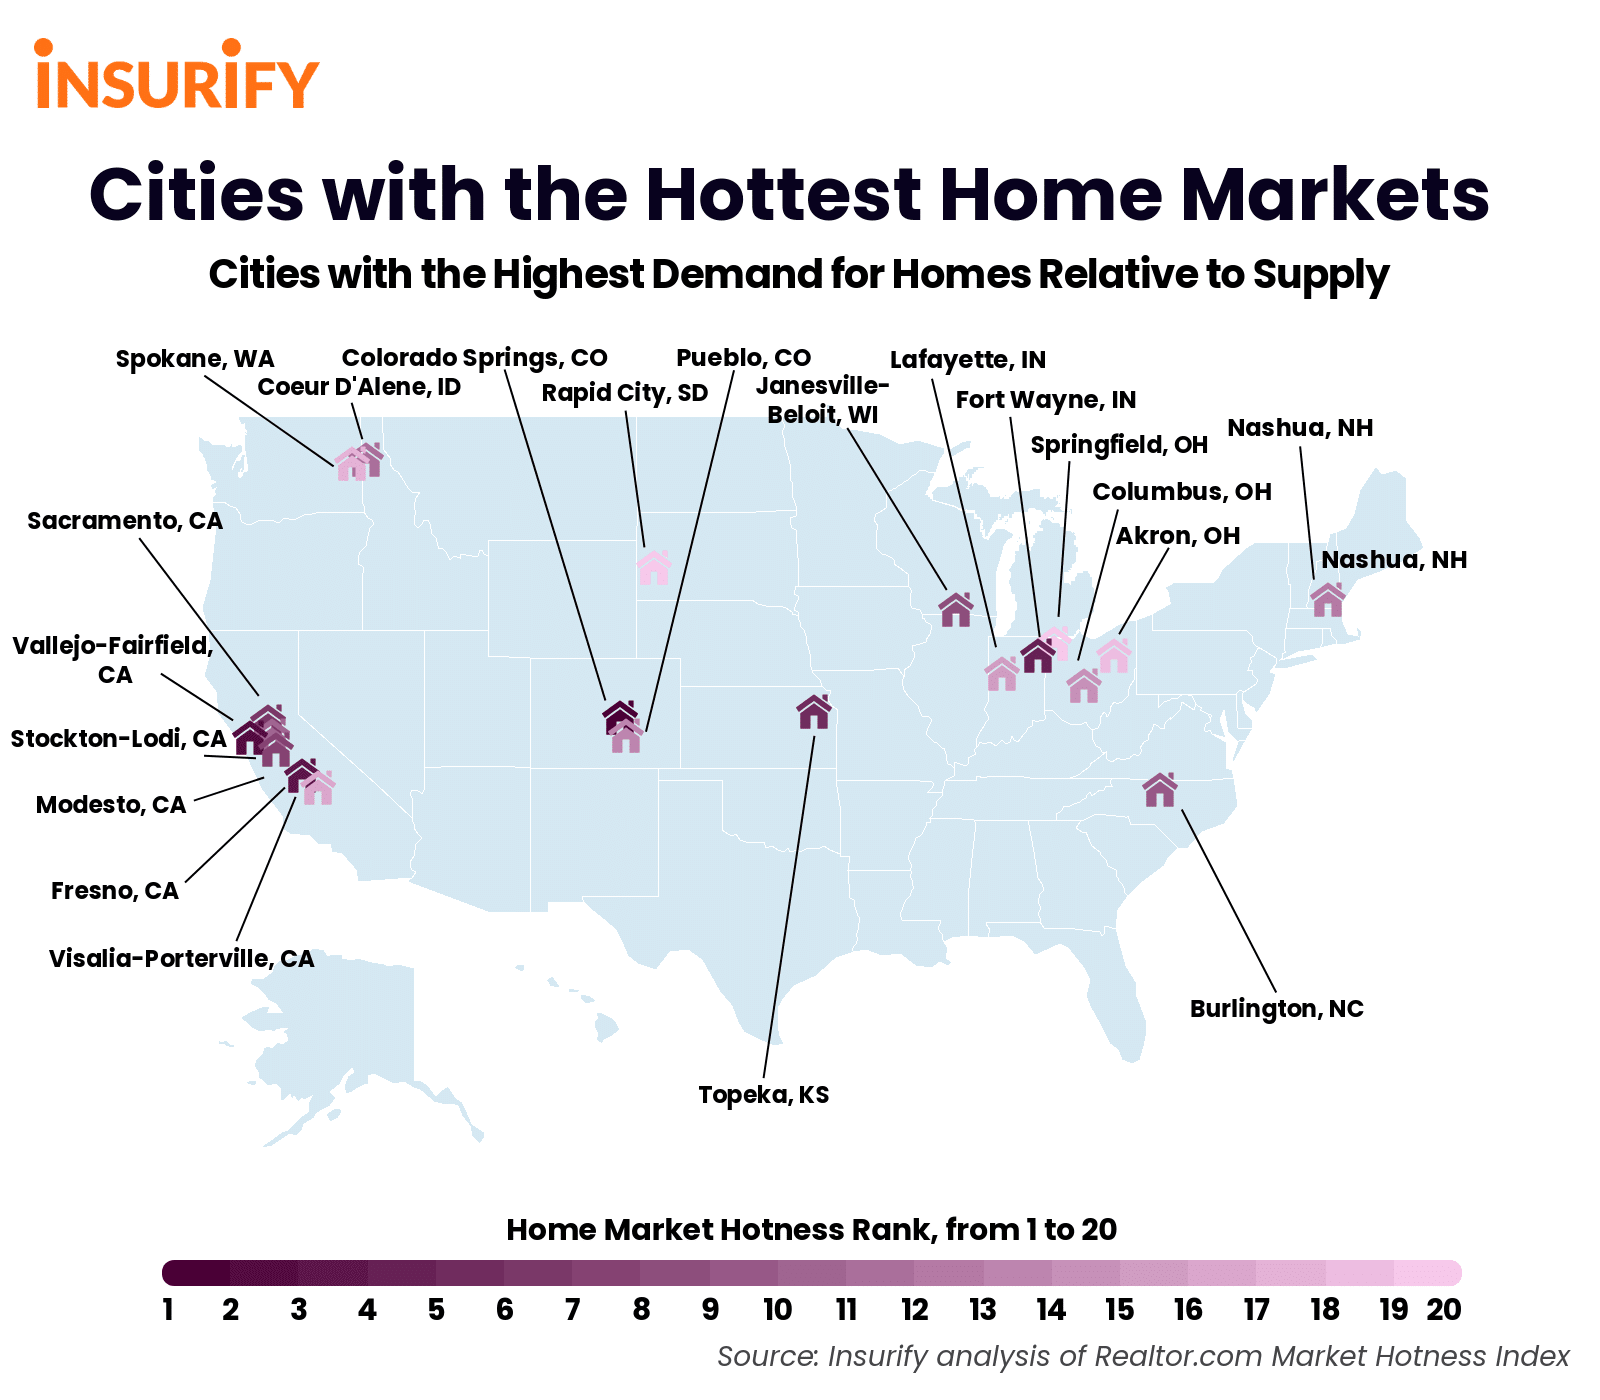 heat map of cities with the hottest real estate markets. The top 20 cities with the highest demand relative to supply were selected.